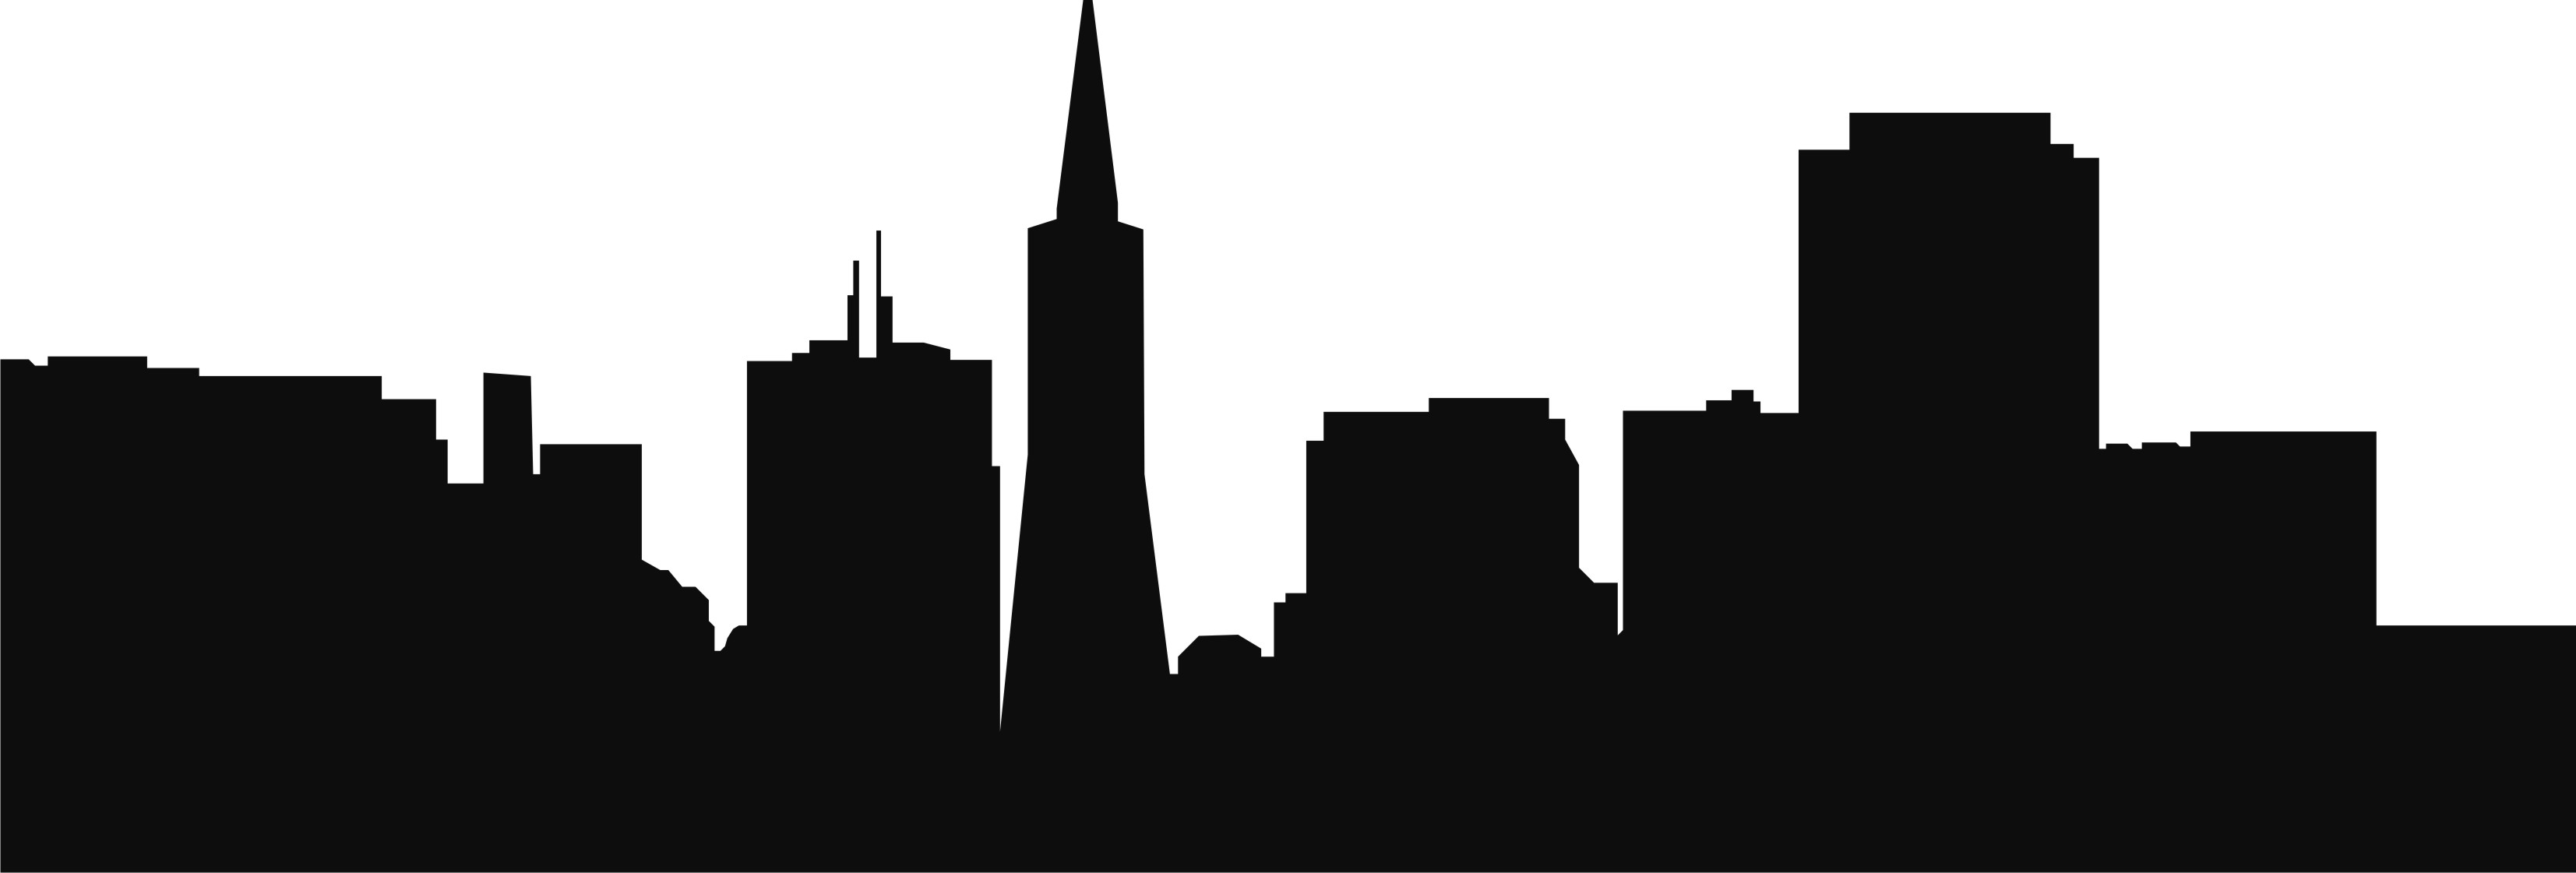 Atlanta skyline clipart for your project.